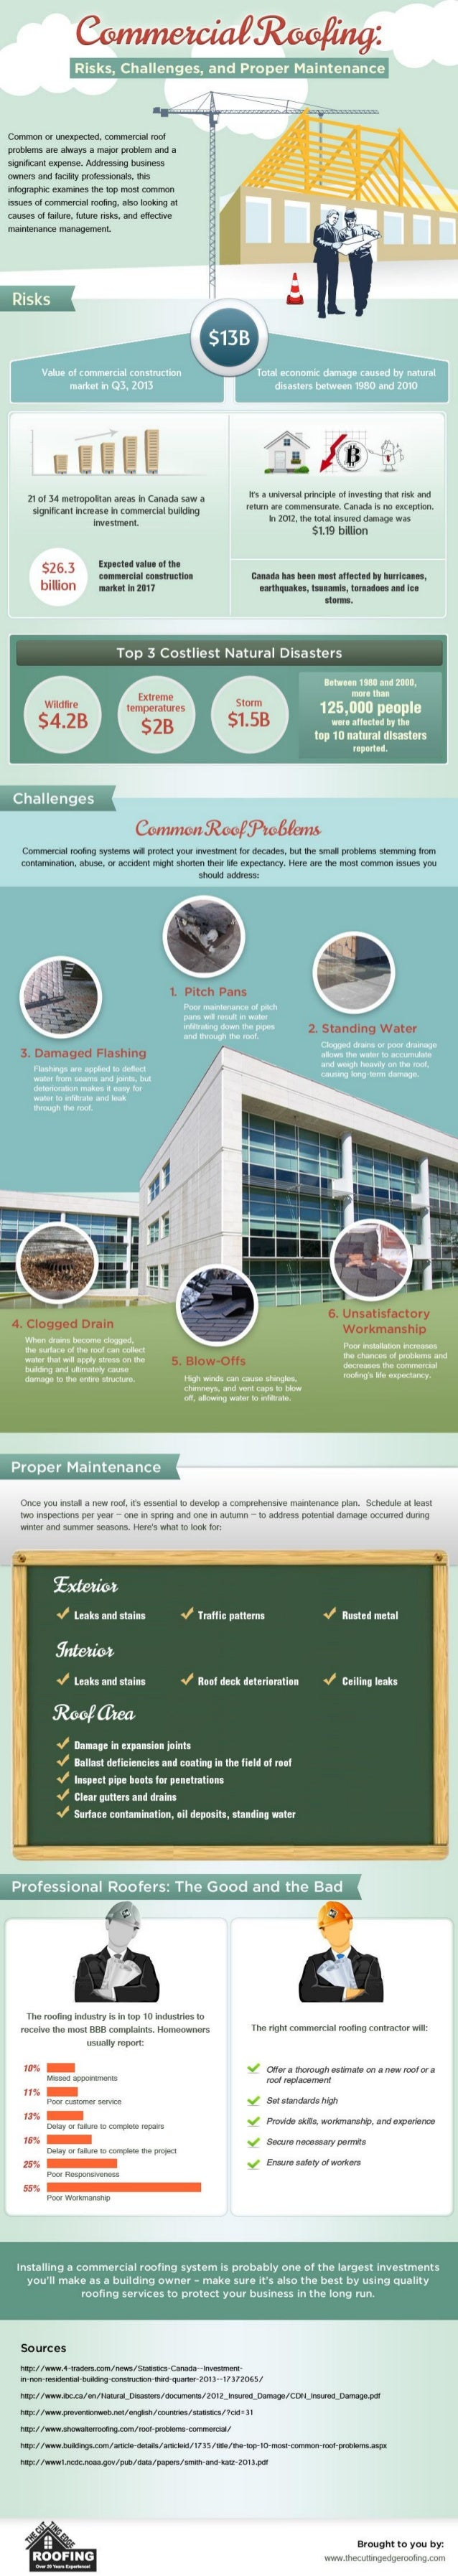 Commercial Roofing: Risks, Challenges and Proper Maintenance